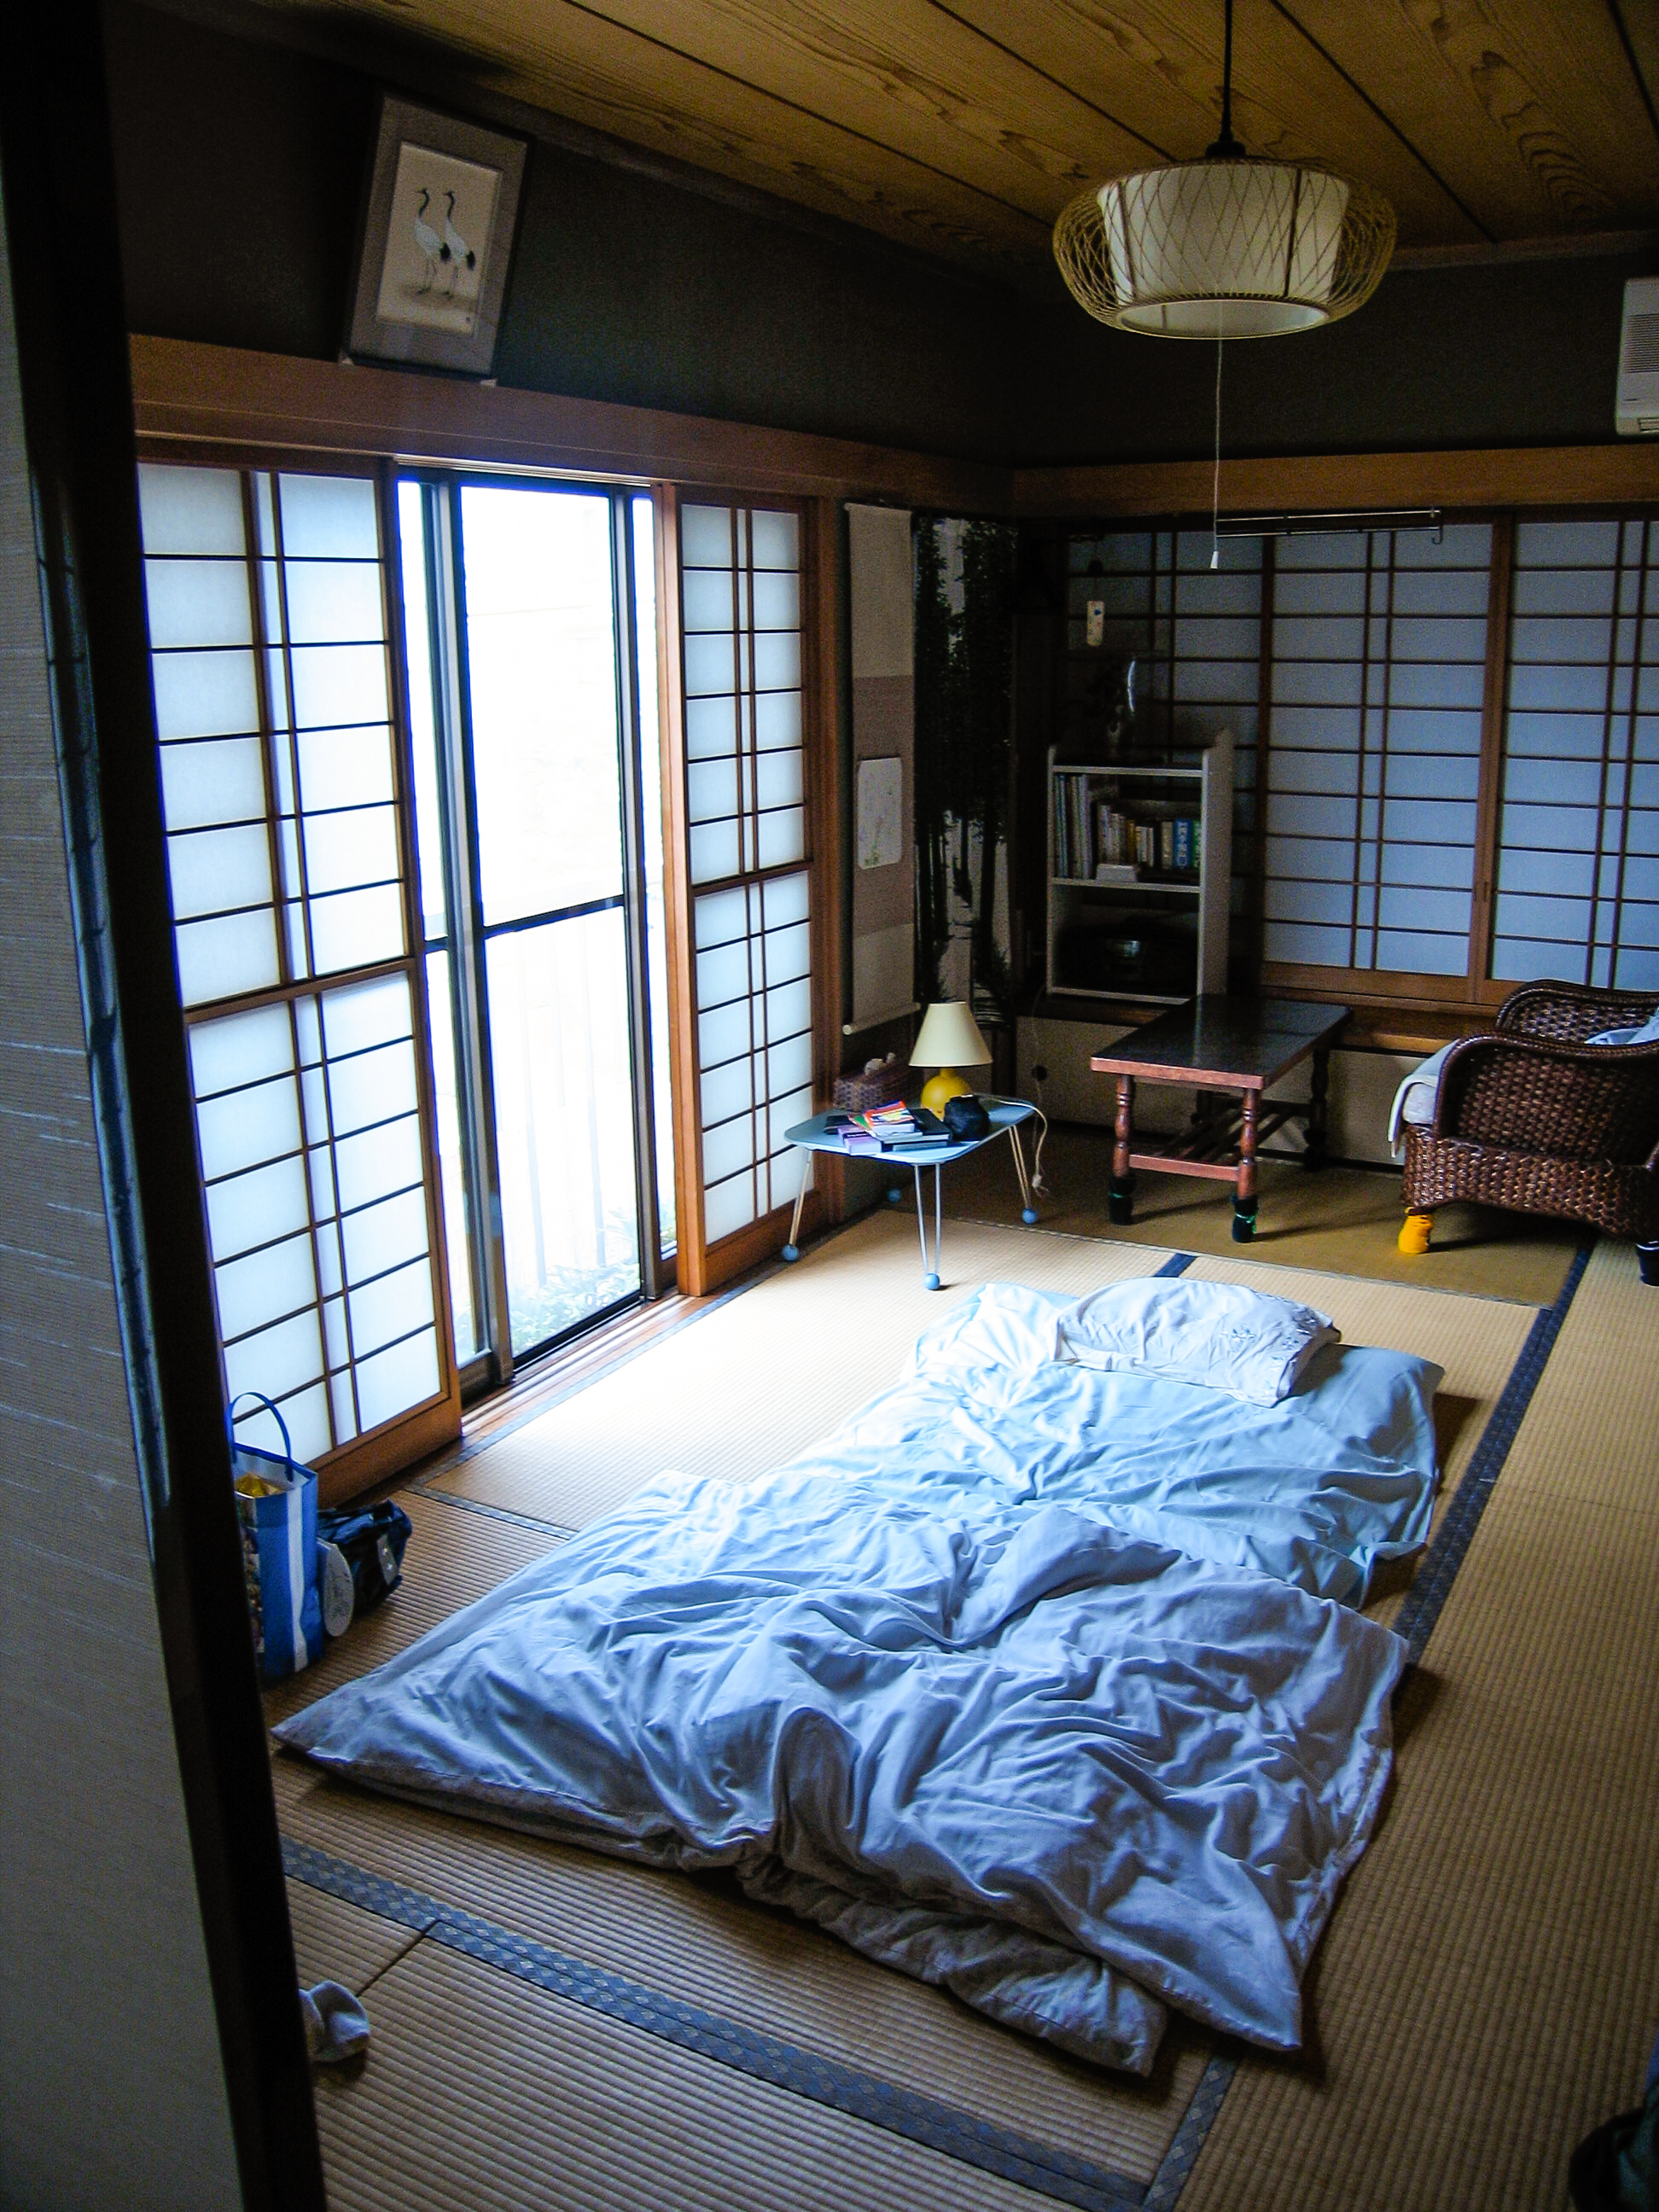 Futon in tatami room at dawn at my first host's home.